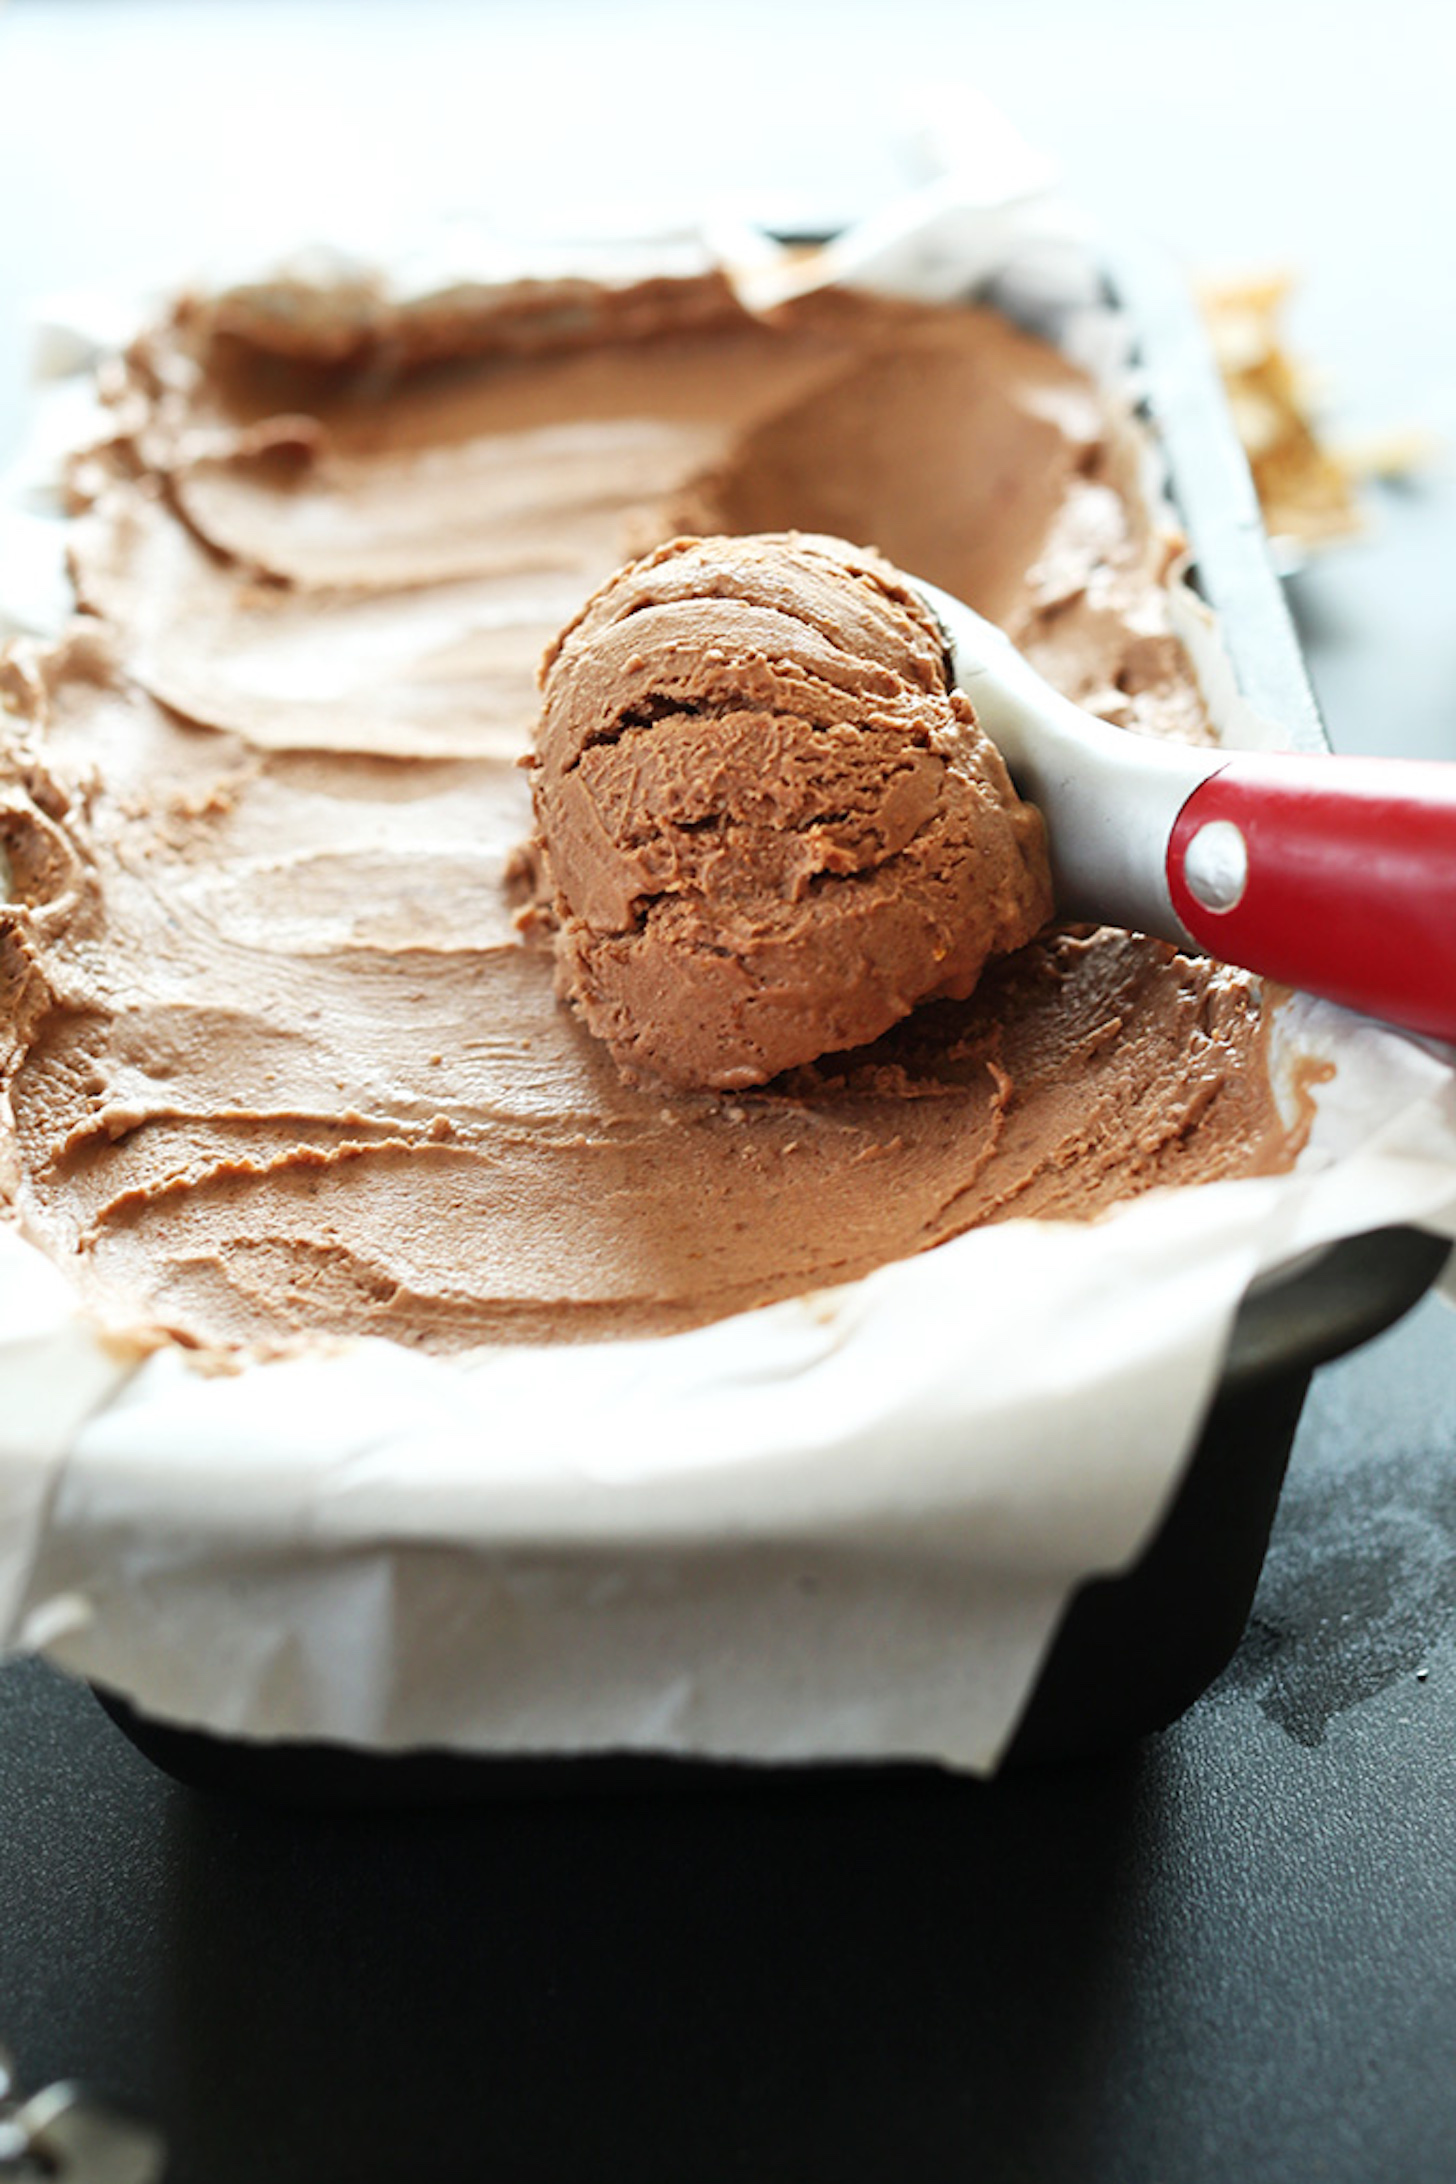 No Churn Chocolate Ice Cream Minimalist Baker Recipes